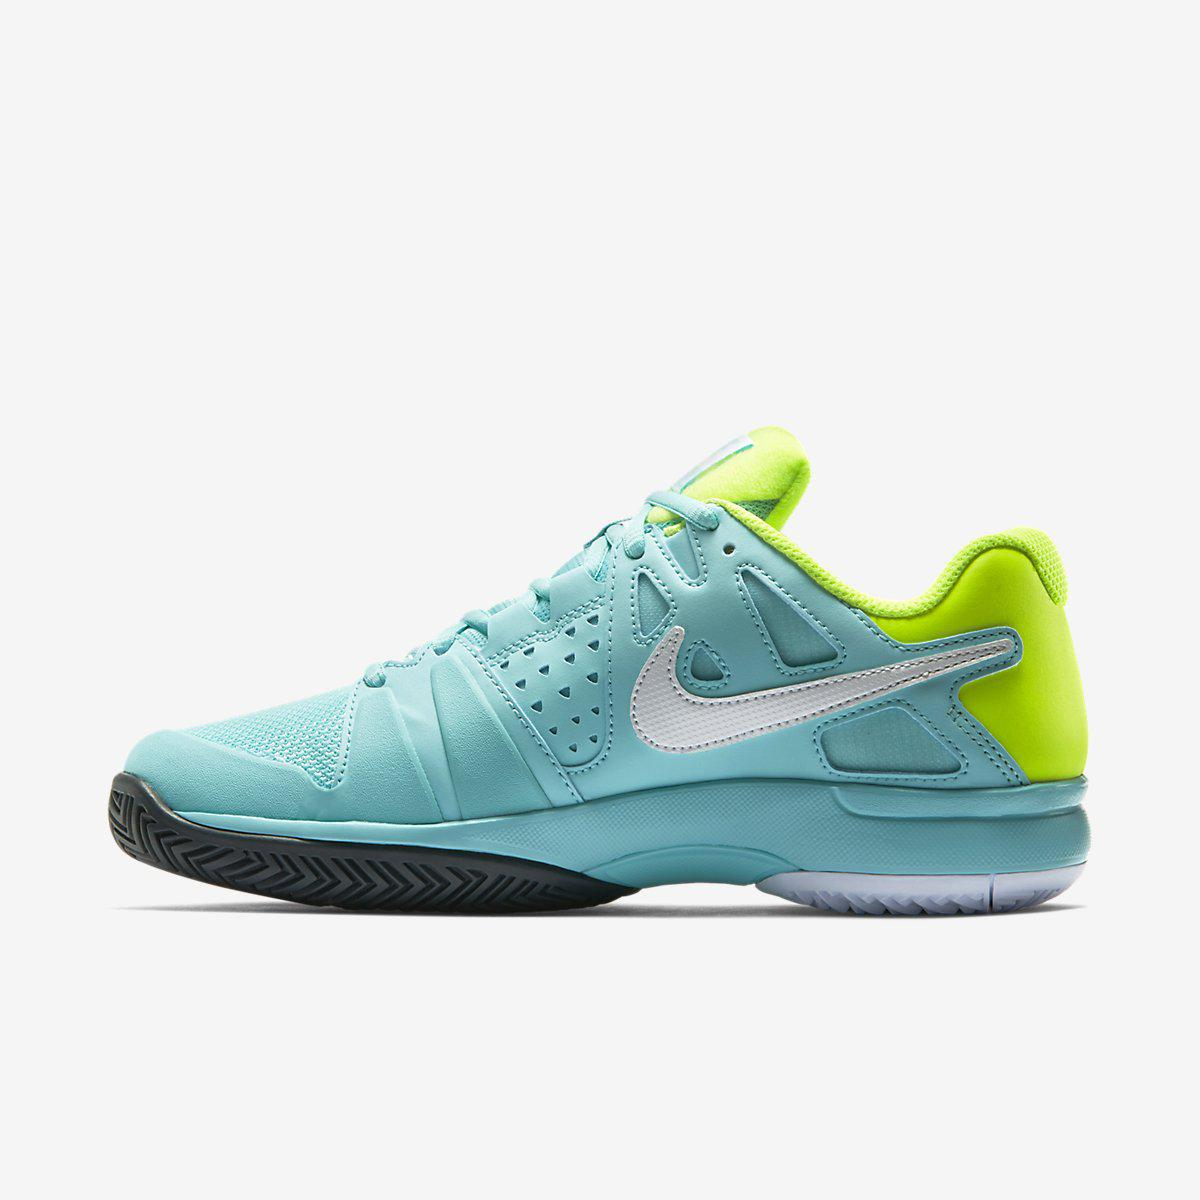 Nike Stability Tennis Shoes